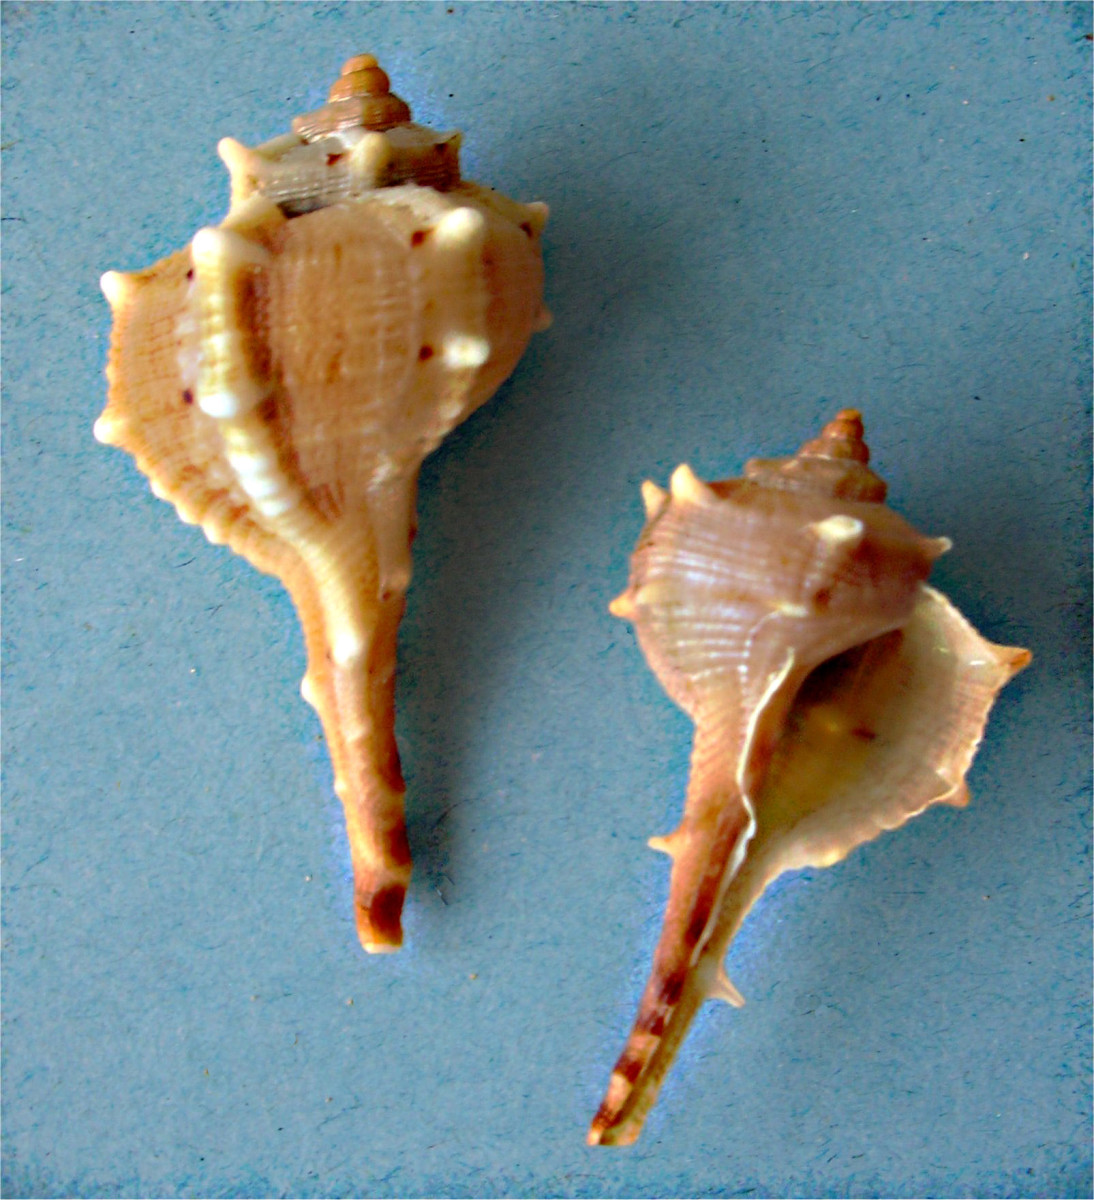 Spiny dye-murex - the shell of the Mollusc responsible for the original purple dye known to the ancient Romans as purpura